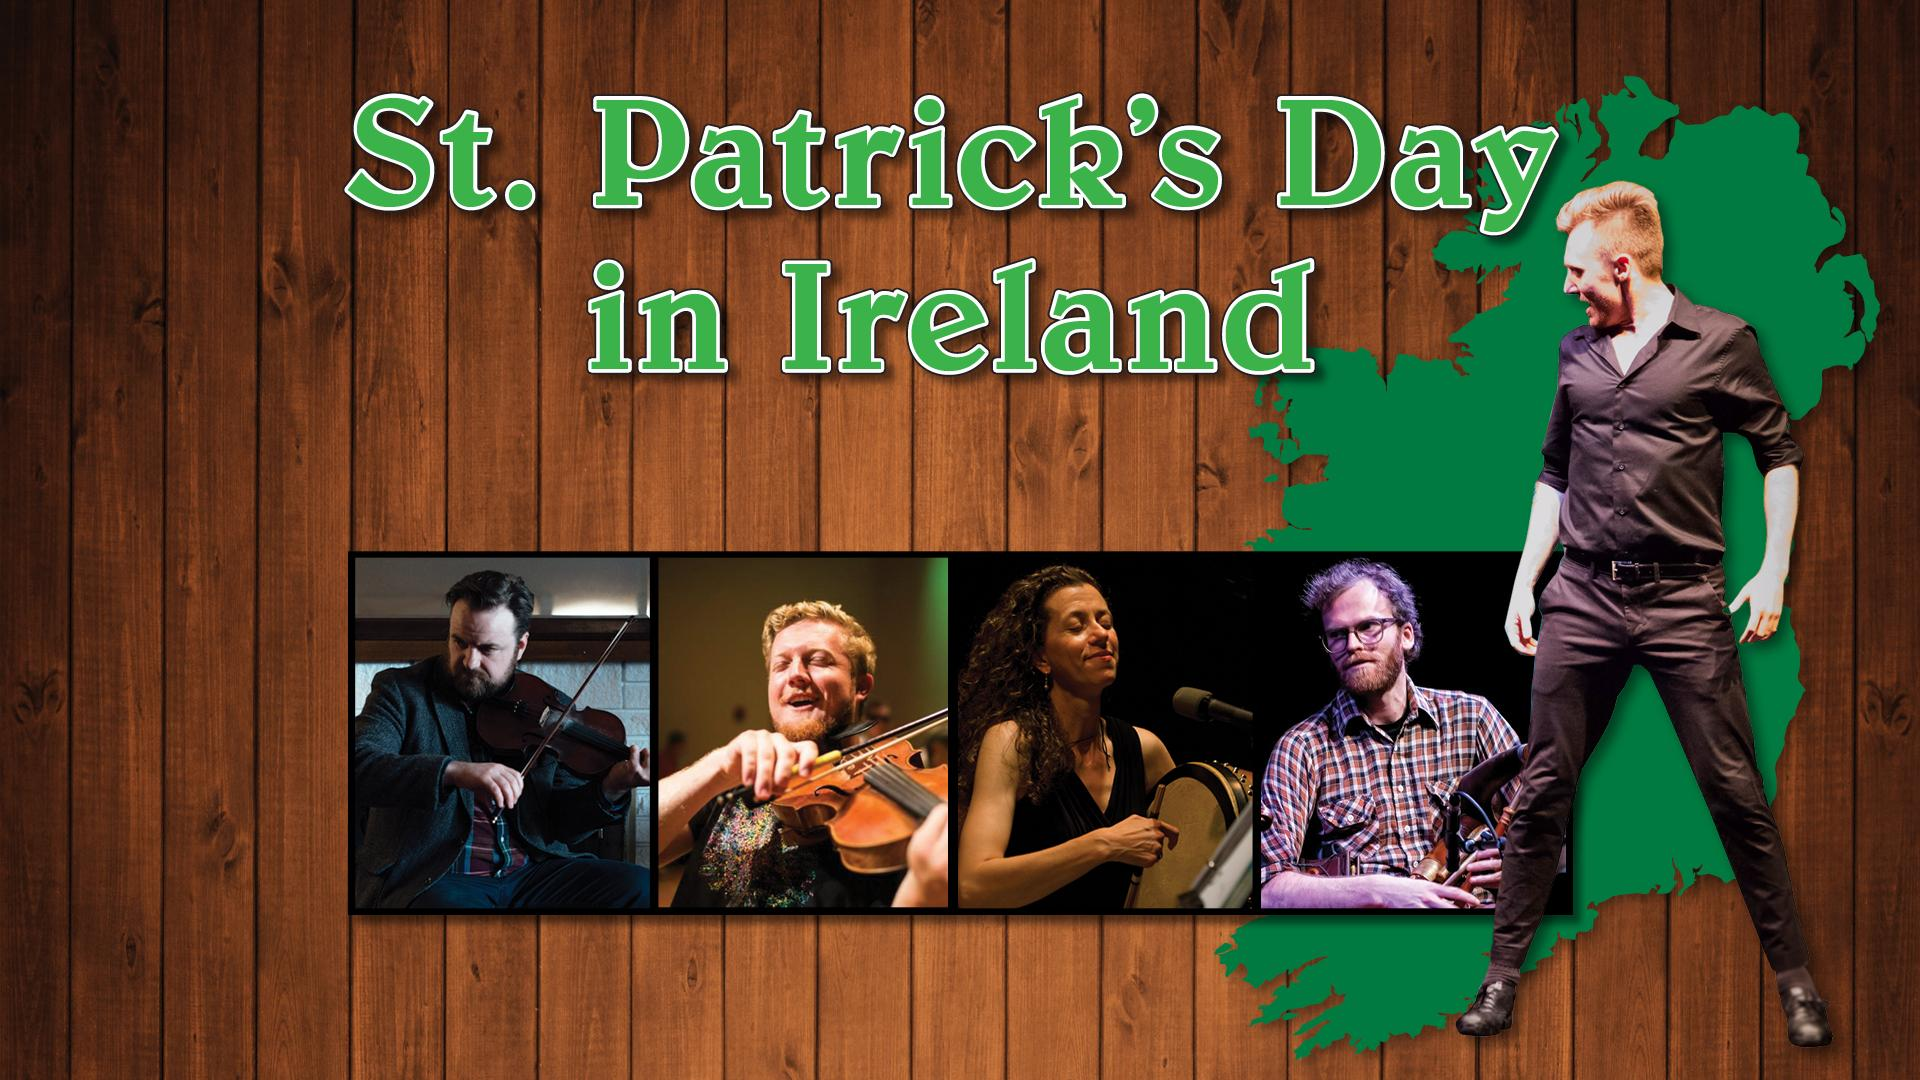 The stars of St. Patrick's Day in Ireland dancing